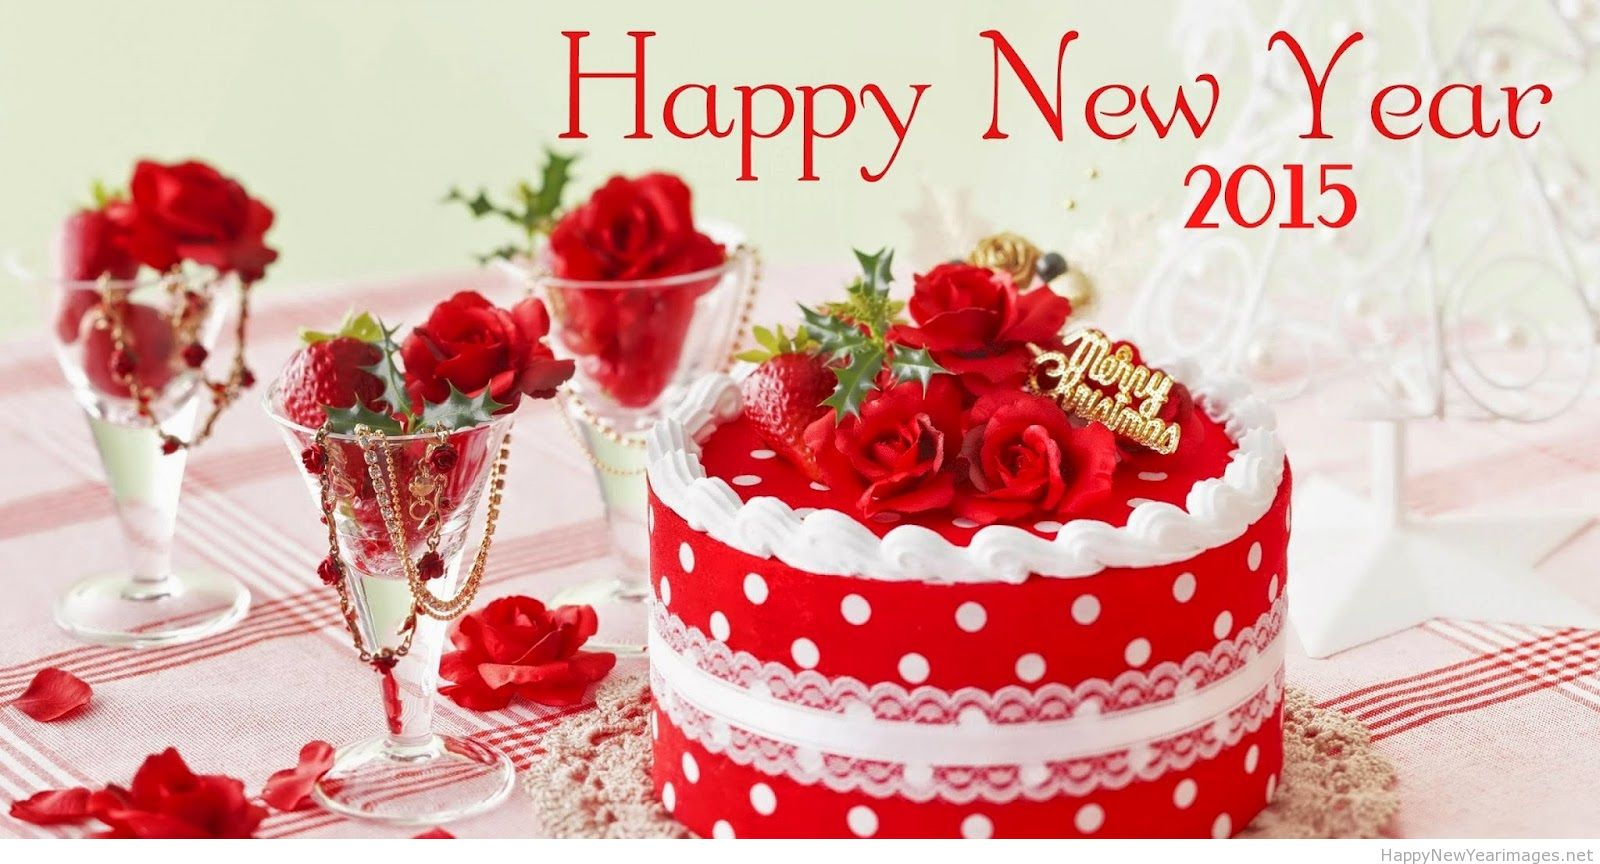 Cake Happy New Year 2015 Wallpapers Images 738030   Ongur 1600x864